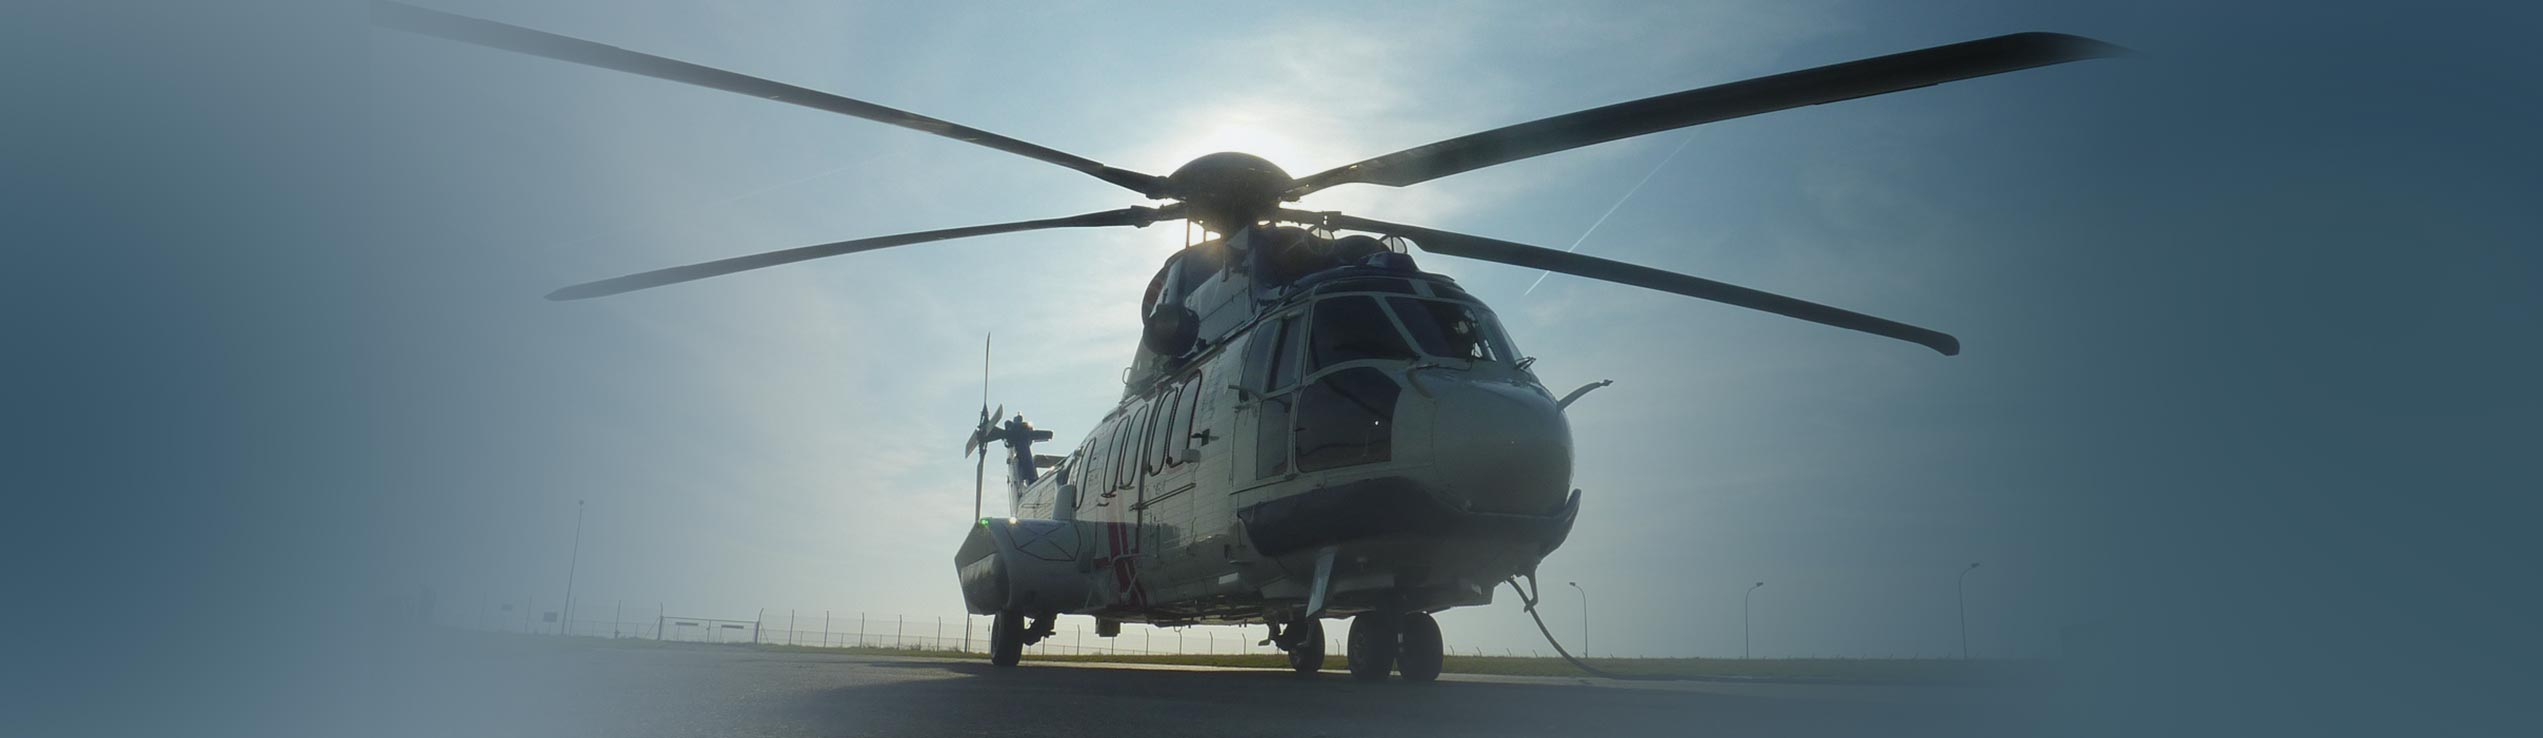 Helicopter EC 225